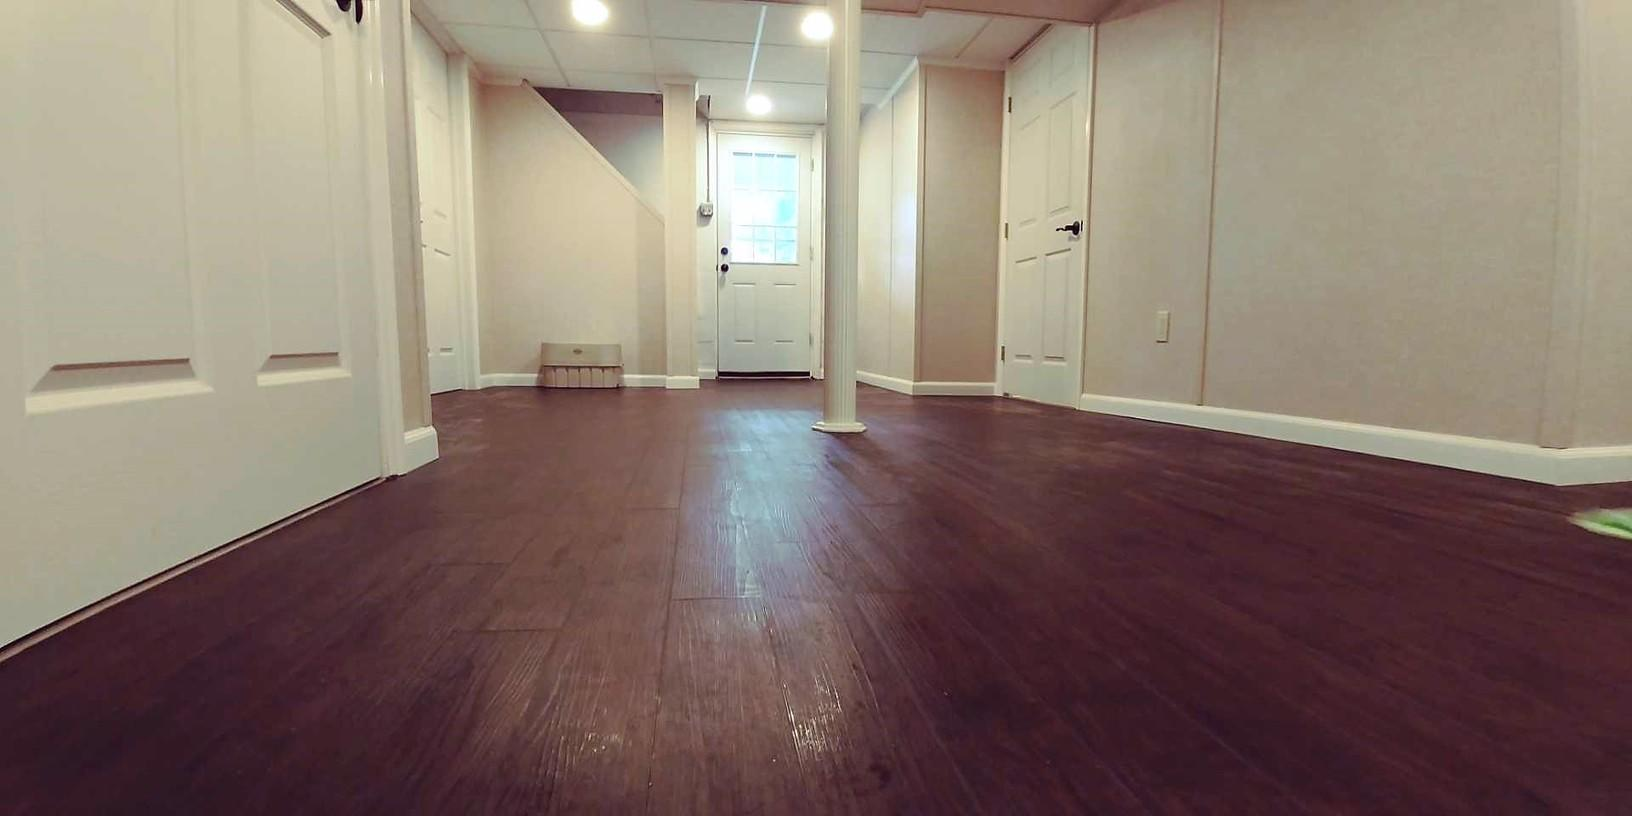 Basement Transformed into Family Room, Office & Bathroom in McKeesport, PA! - After Photo